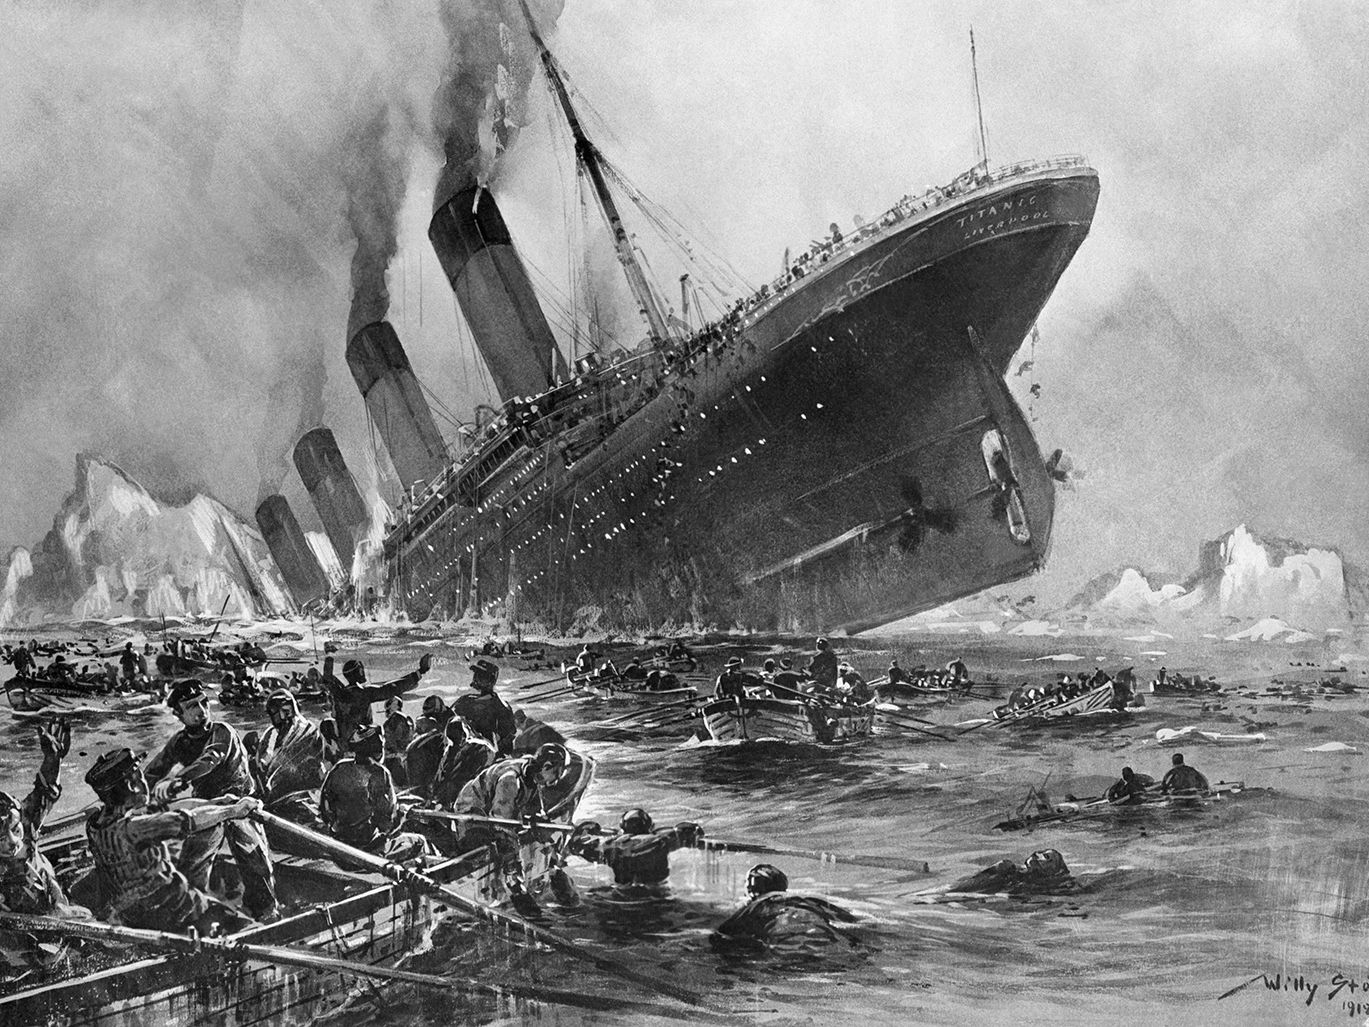 The Sinking of the RMS Titanic (1912)